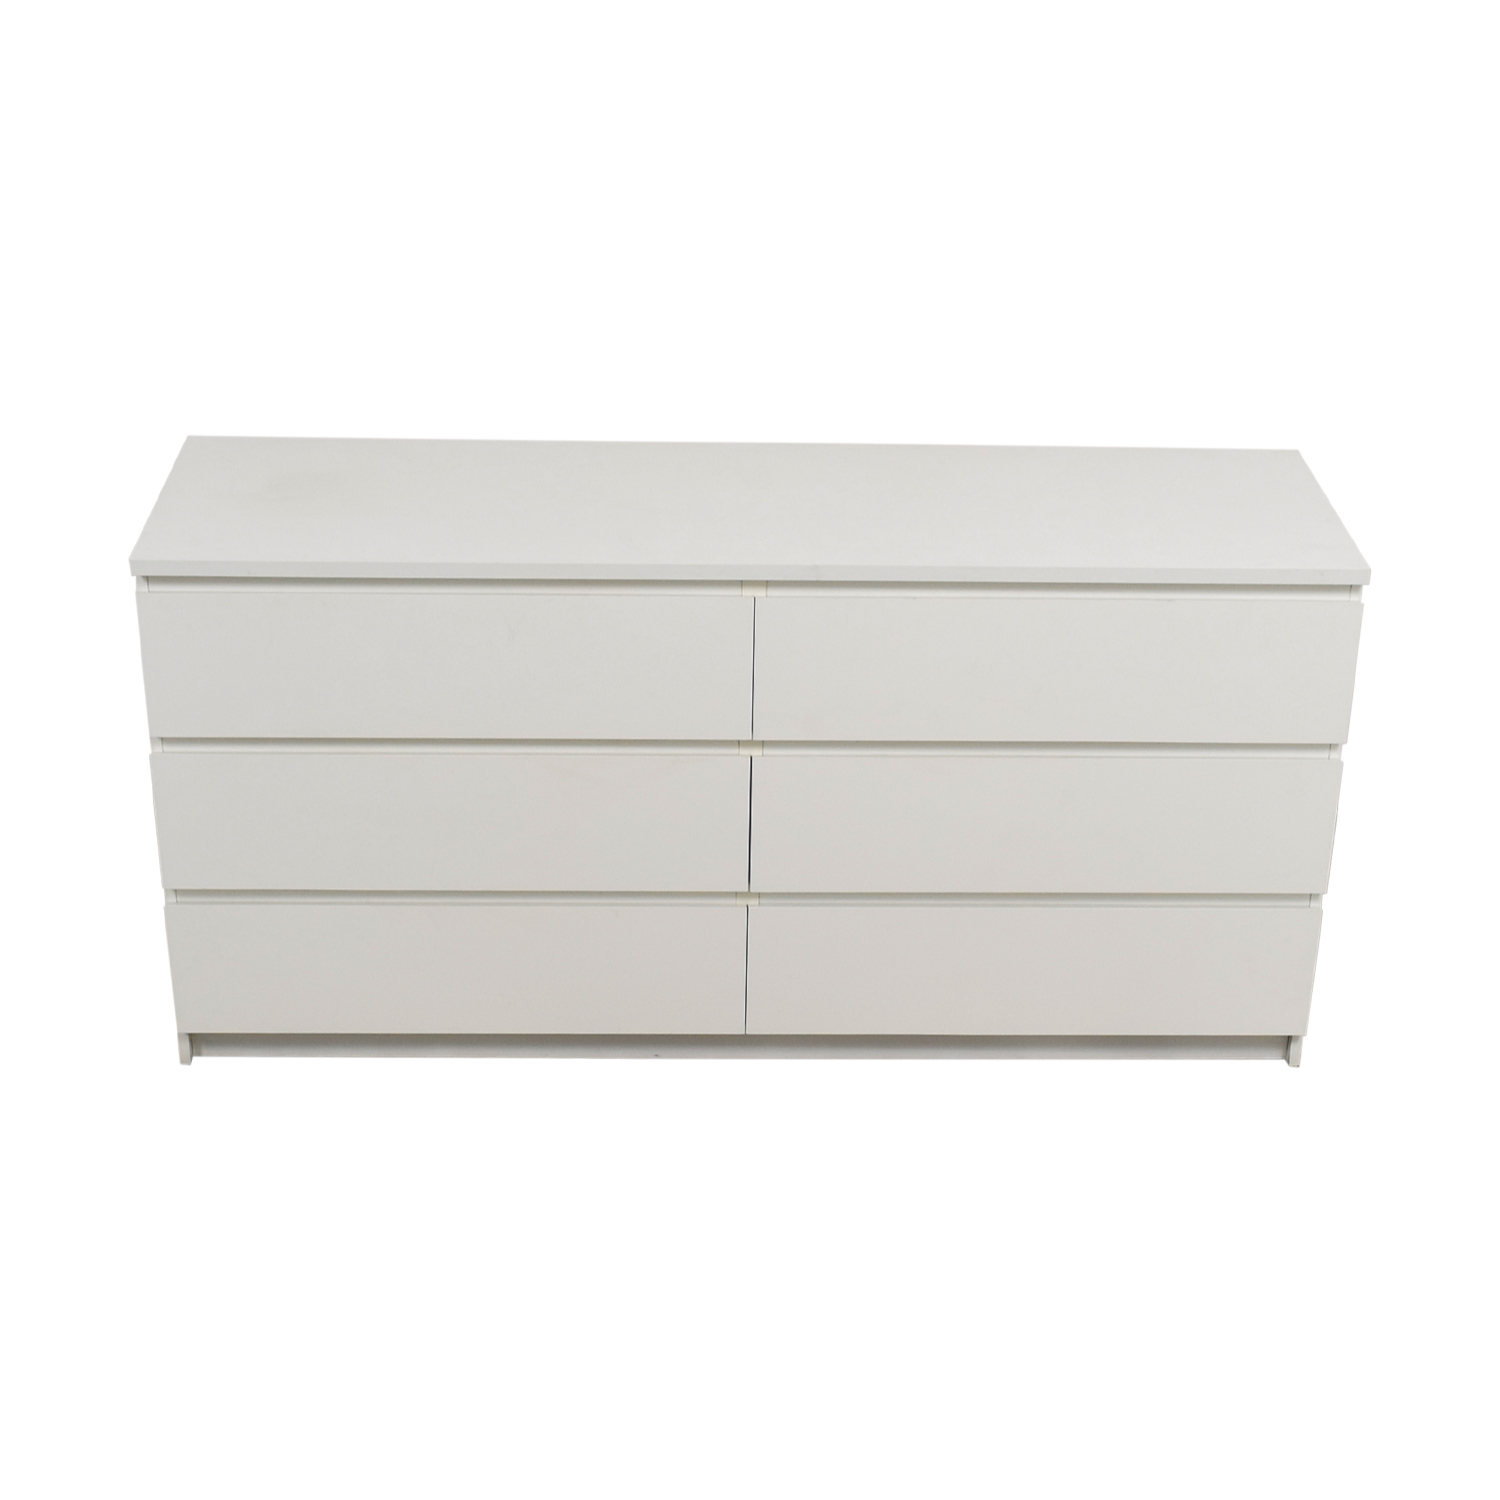 IKEA IKEA Six-Drawer White Dresser discount